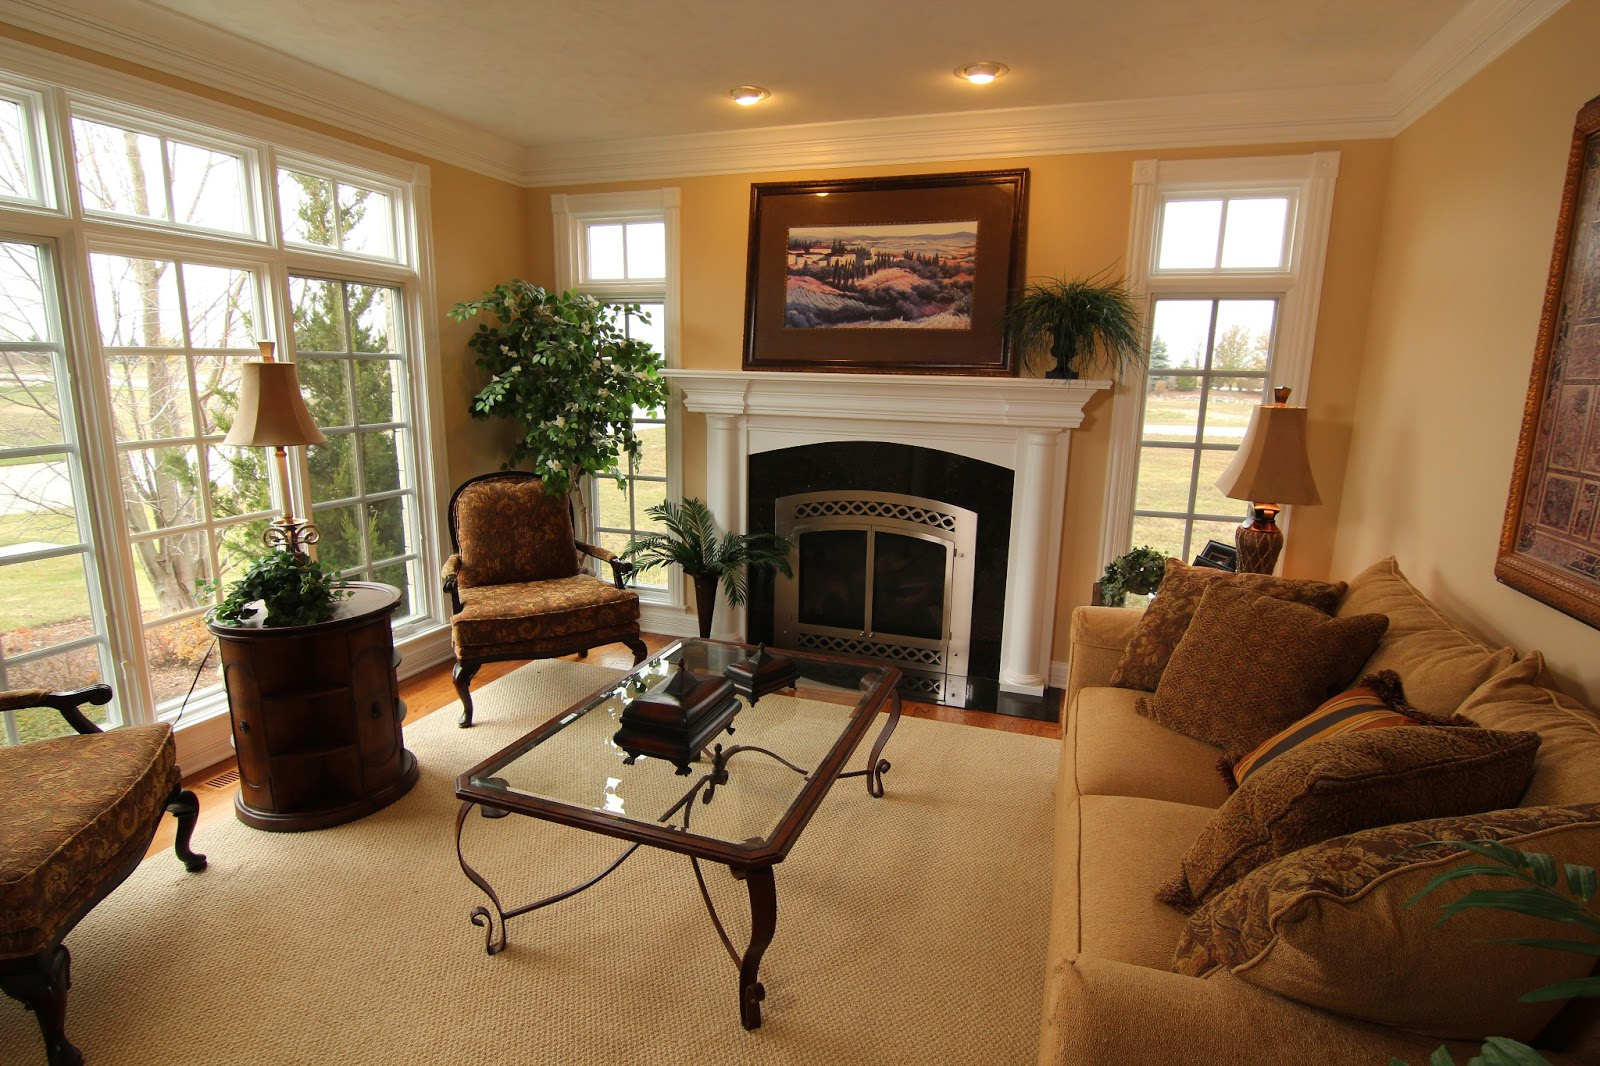 Cozy fireplace decor tips for keeping warm in style How to design a living room with a fireplace